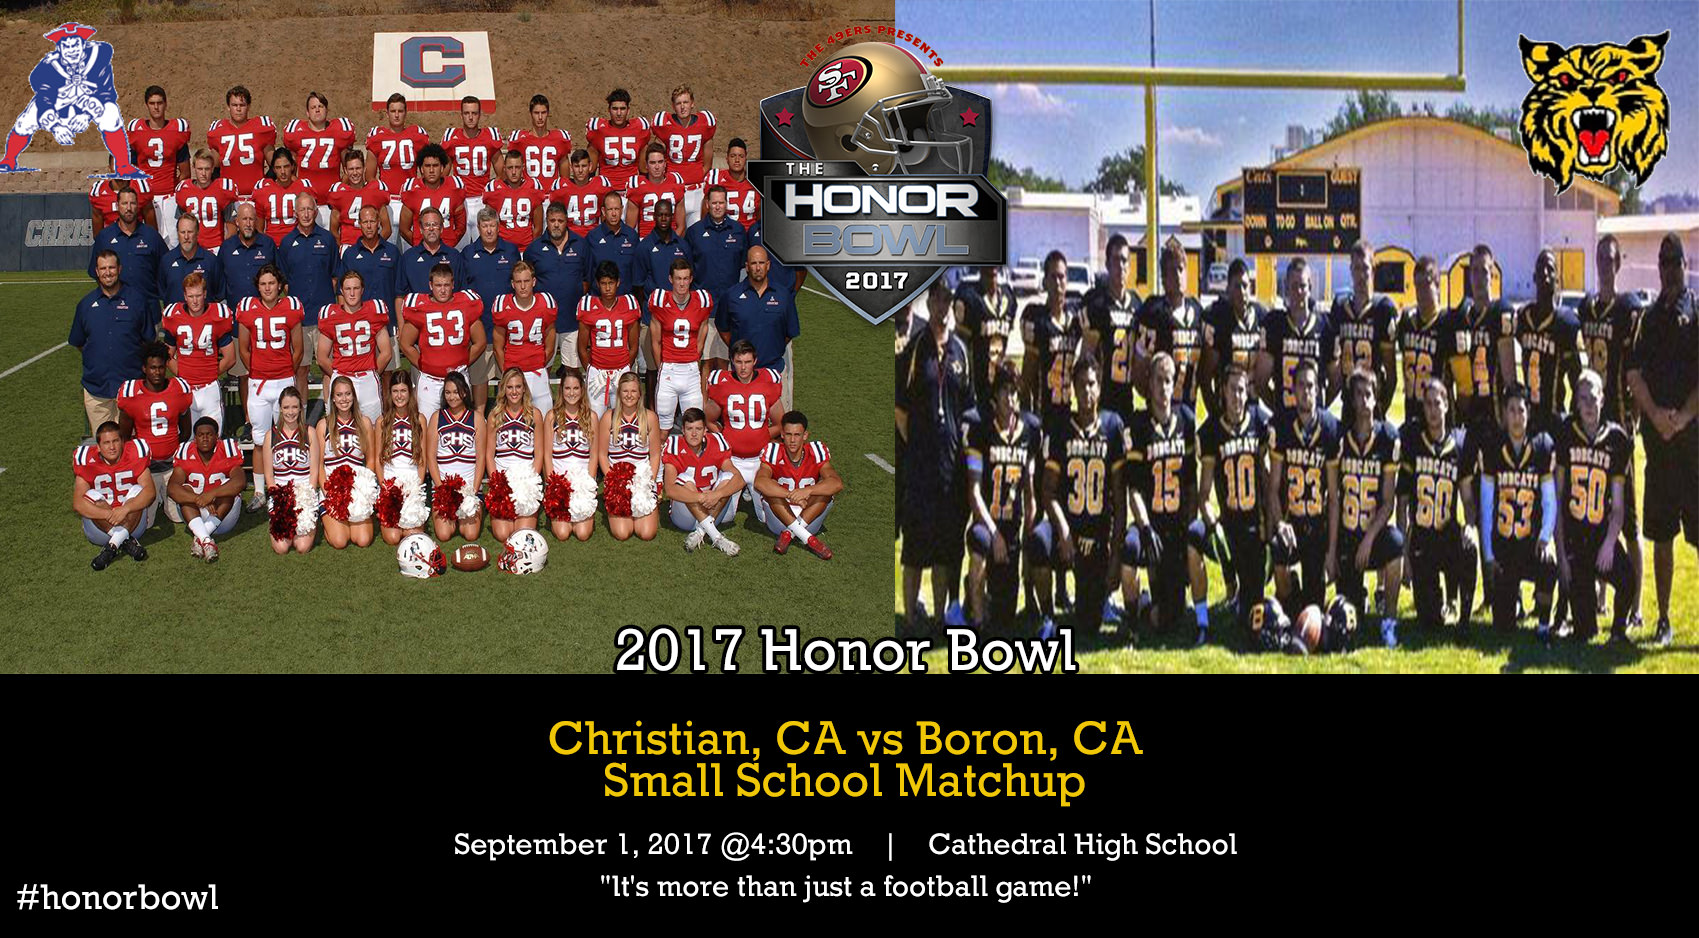 Game One: Christian HS vs Boron HS